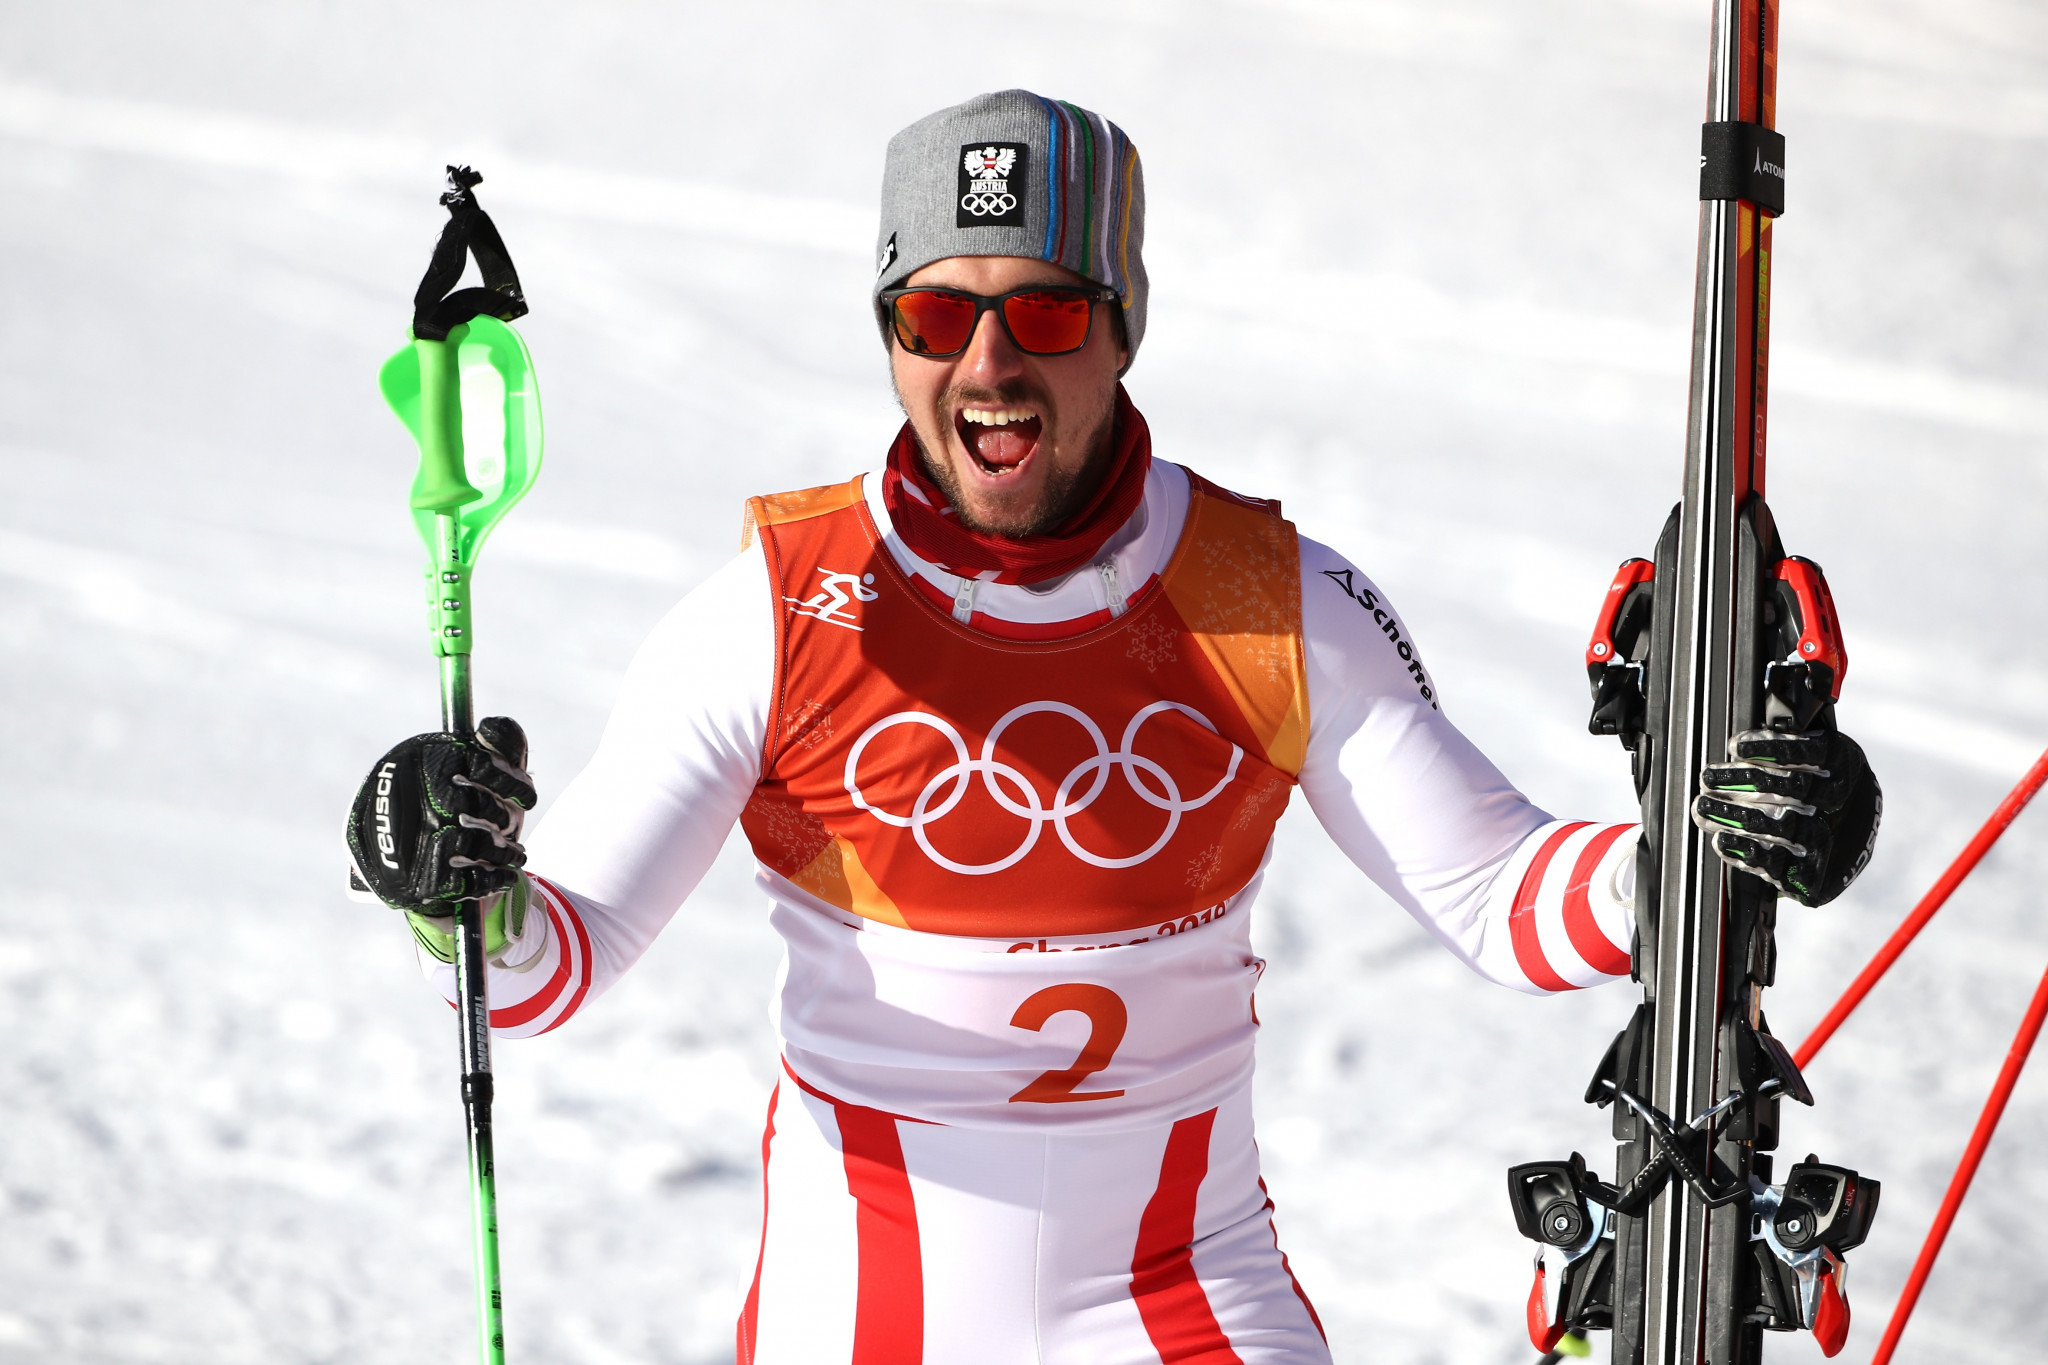 US Alpine skier Tommy Biesemeyer out of Games with ankle injury